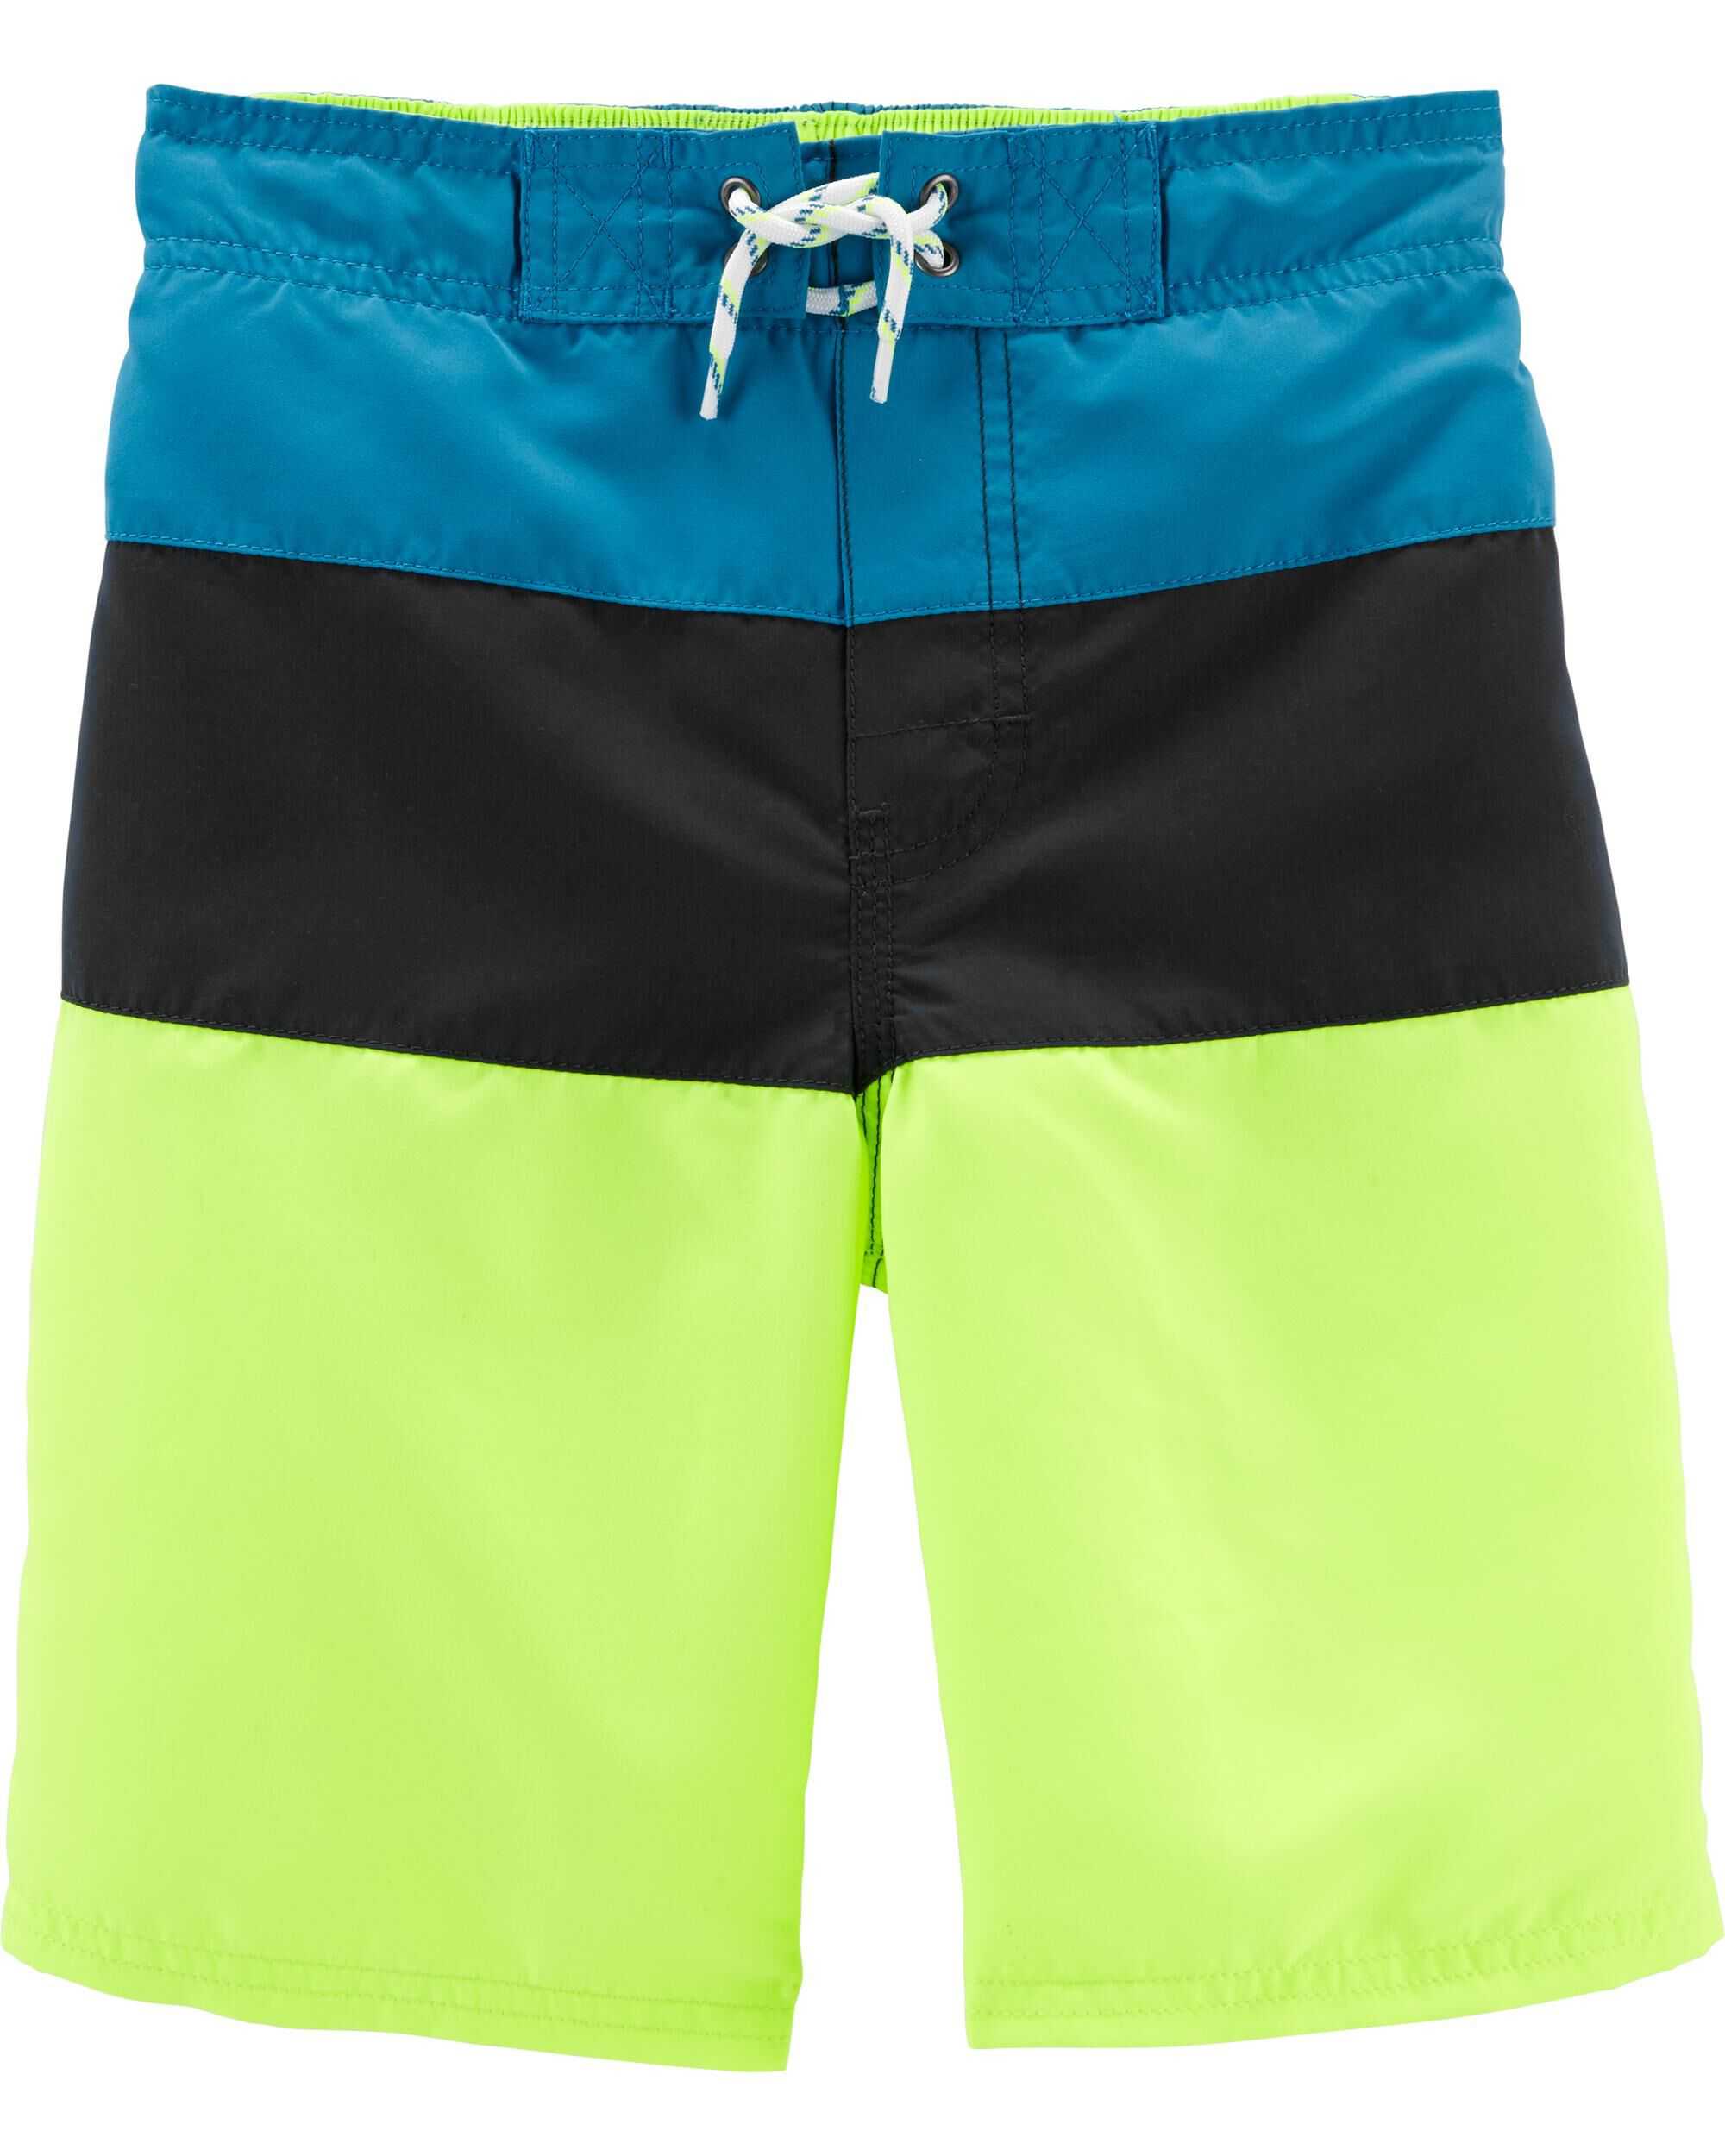 *Clearance*  OshKosh Colorblock Swim Trunks